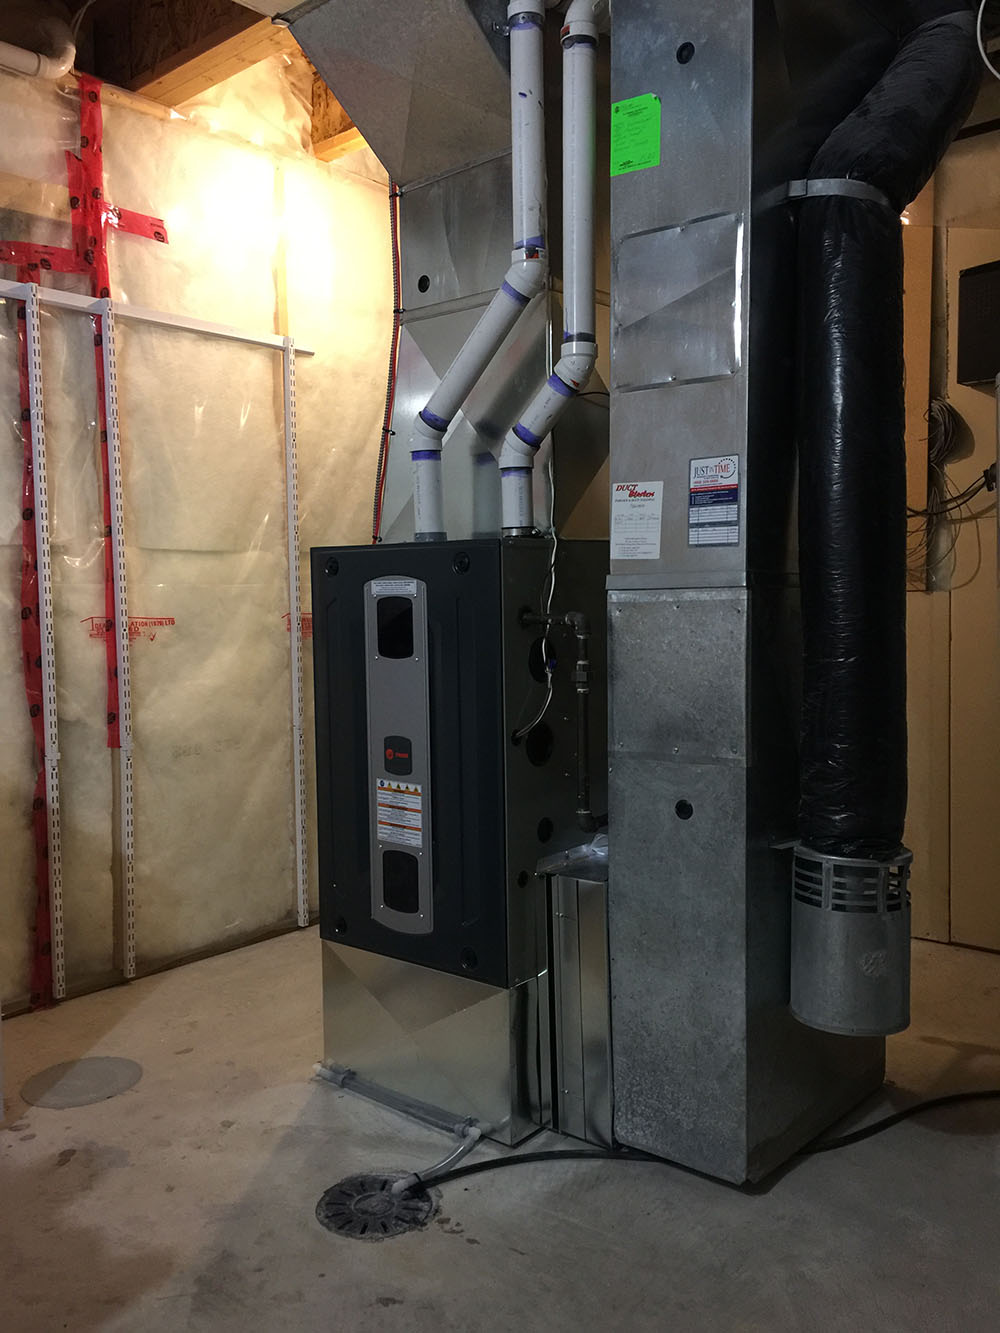 Still Stuck With That Old Furnace? Here's What You're Missing